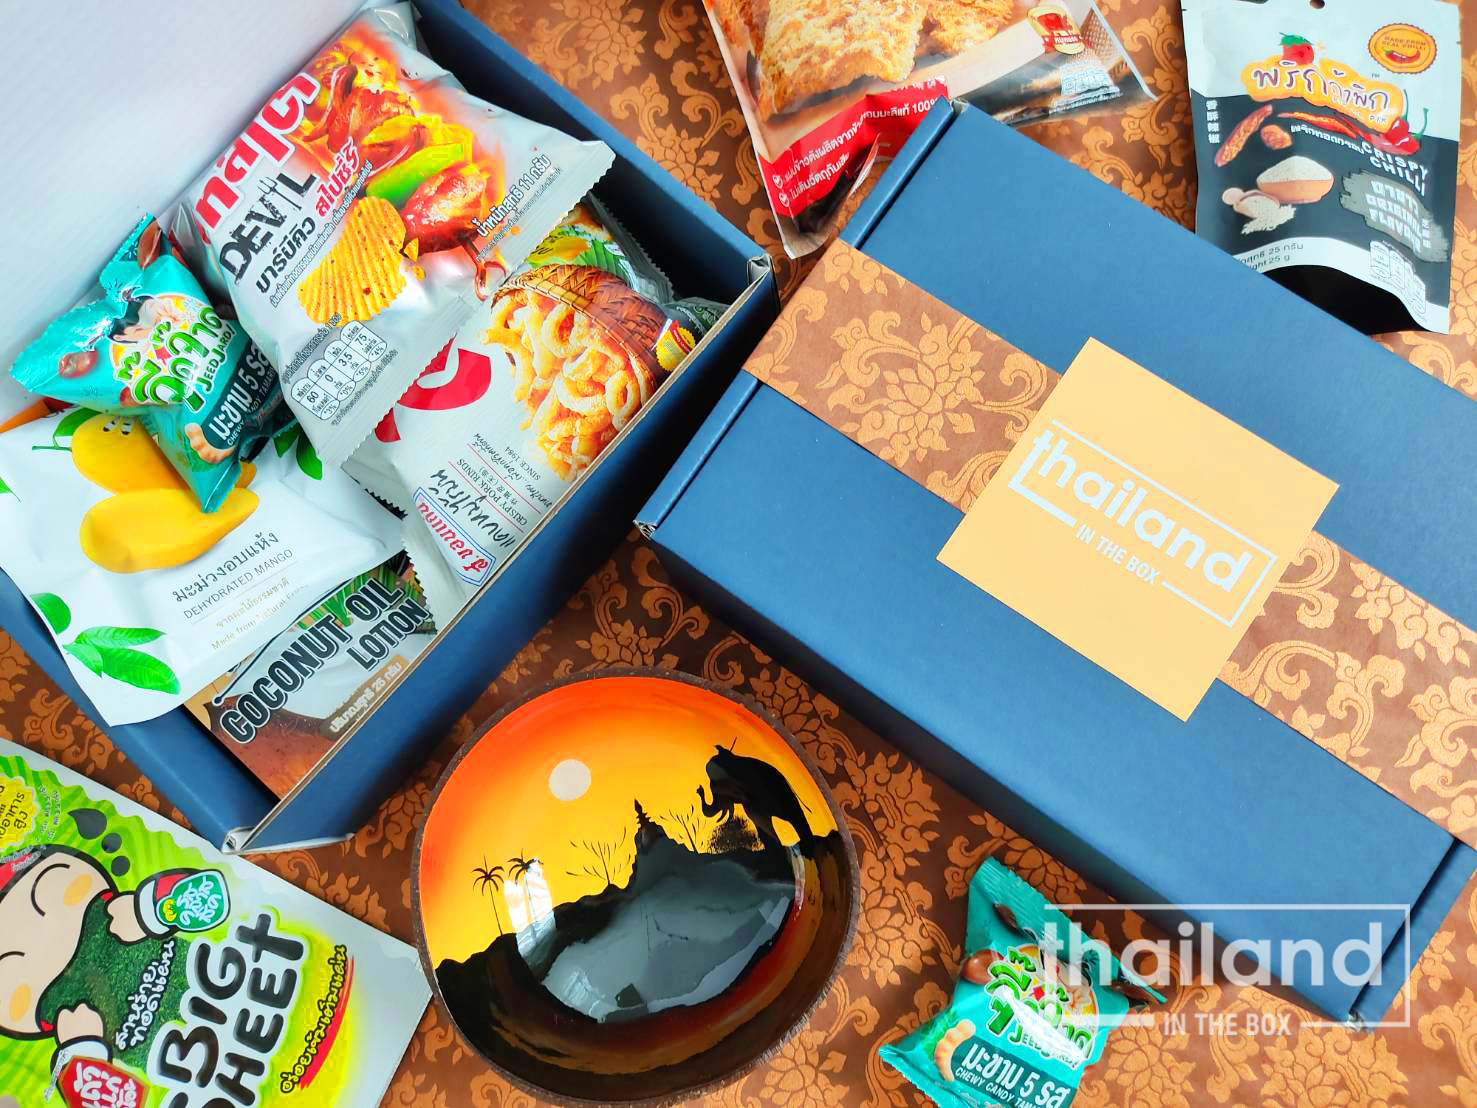 Thailand In The Box Promotes The Rich Thai Culture Through Snacks And Sweets 1